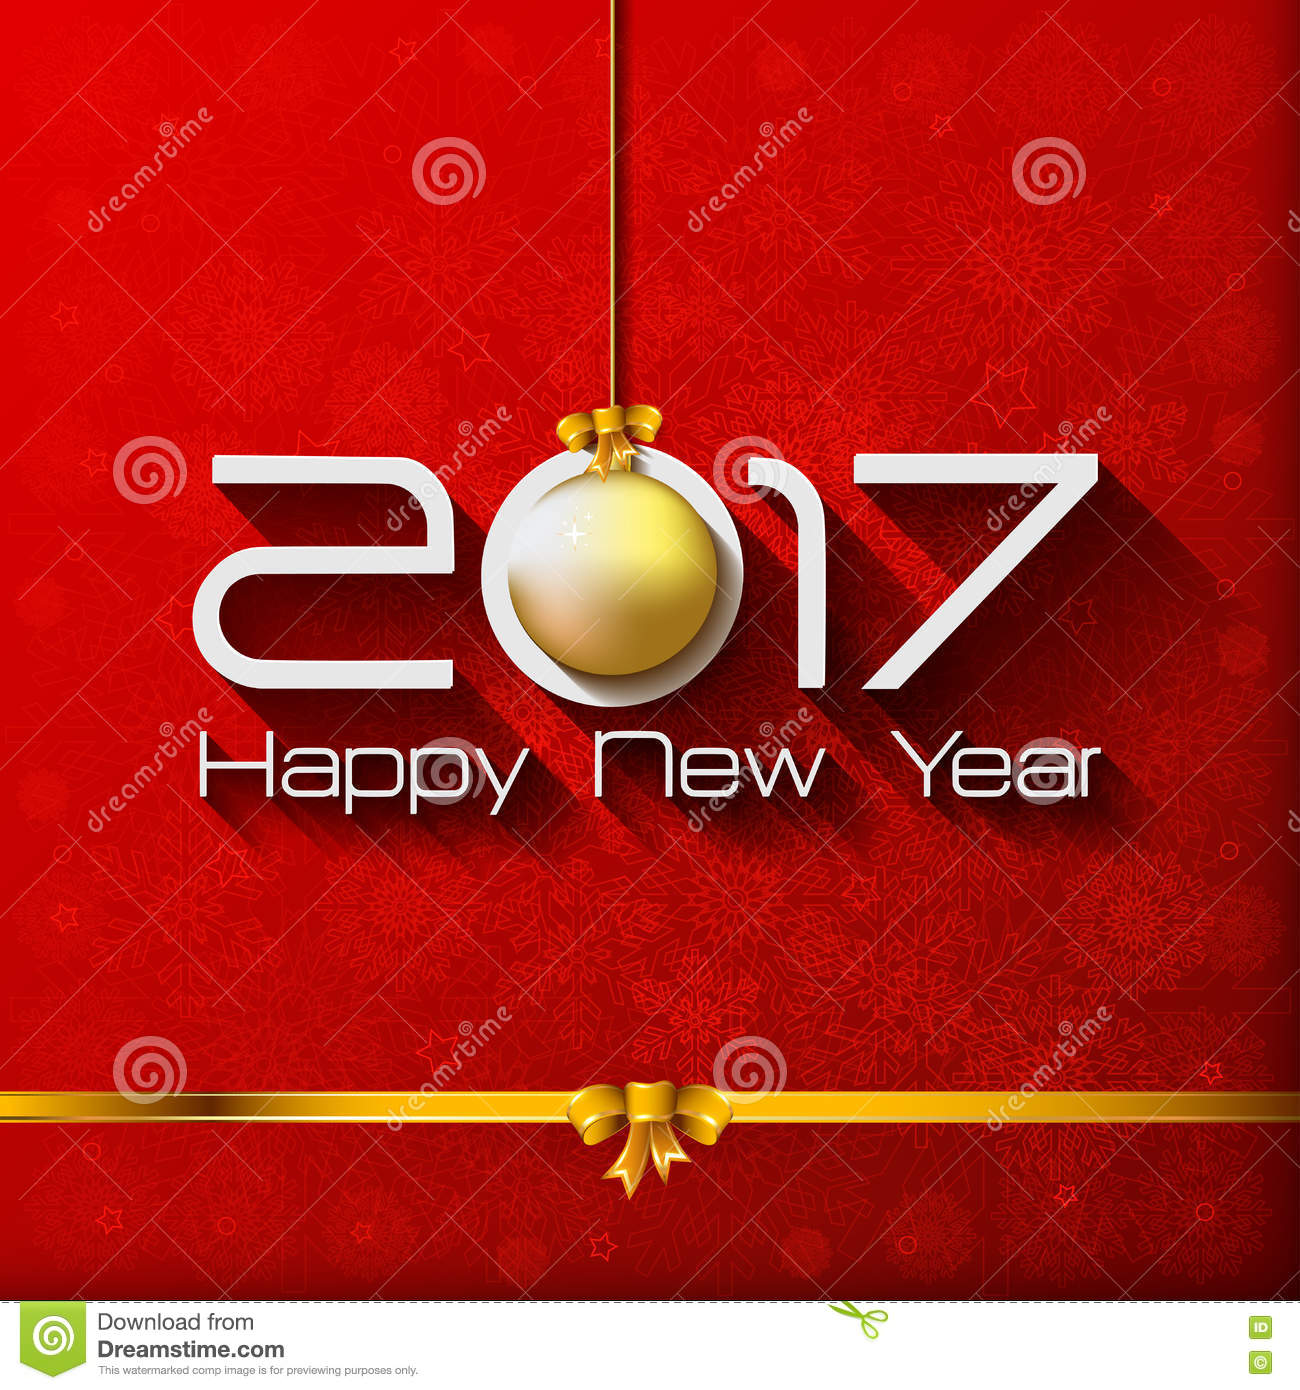 2017 Happy New Year Gift Greeting Card With Gold Stock Illustration